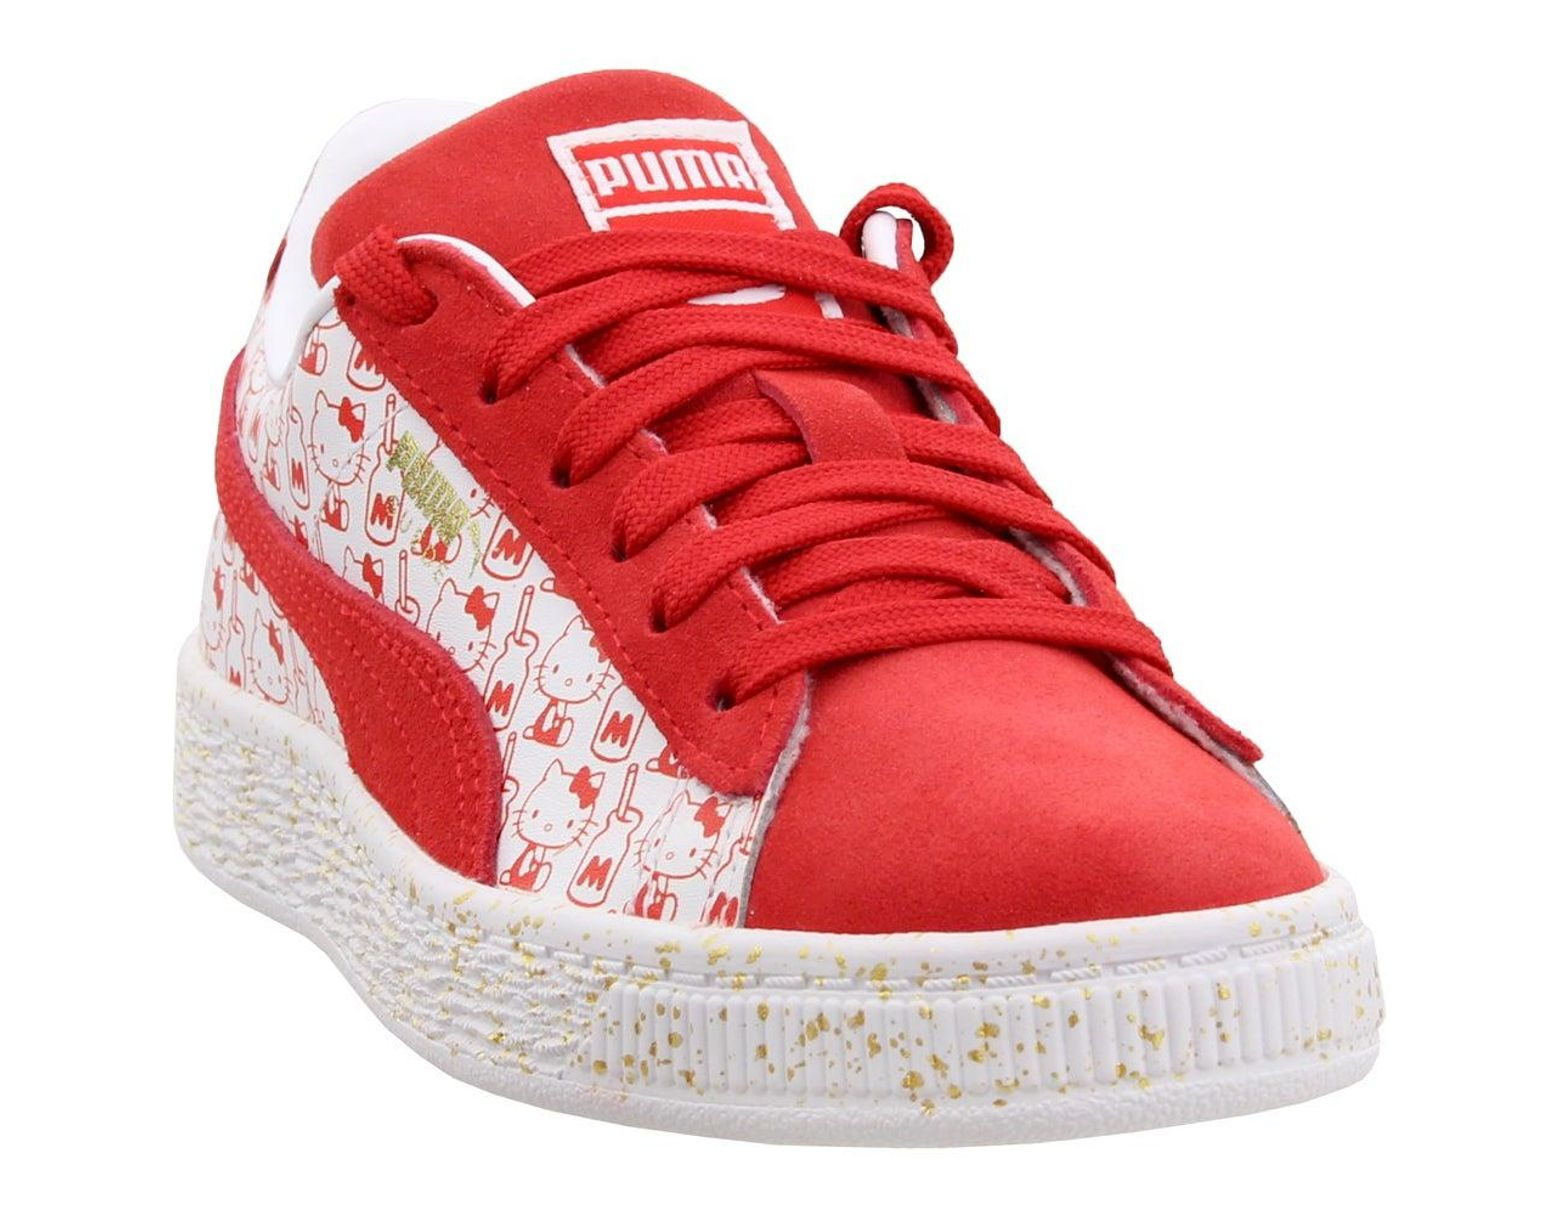 sports shoes 13d9d 00809 Women's Red Suede Classic X Hello Kitty Sneakers